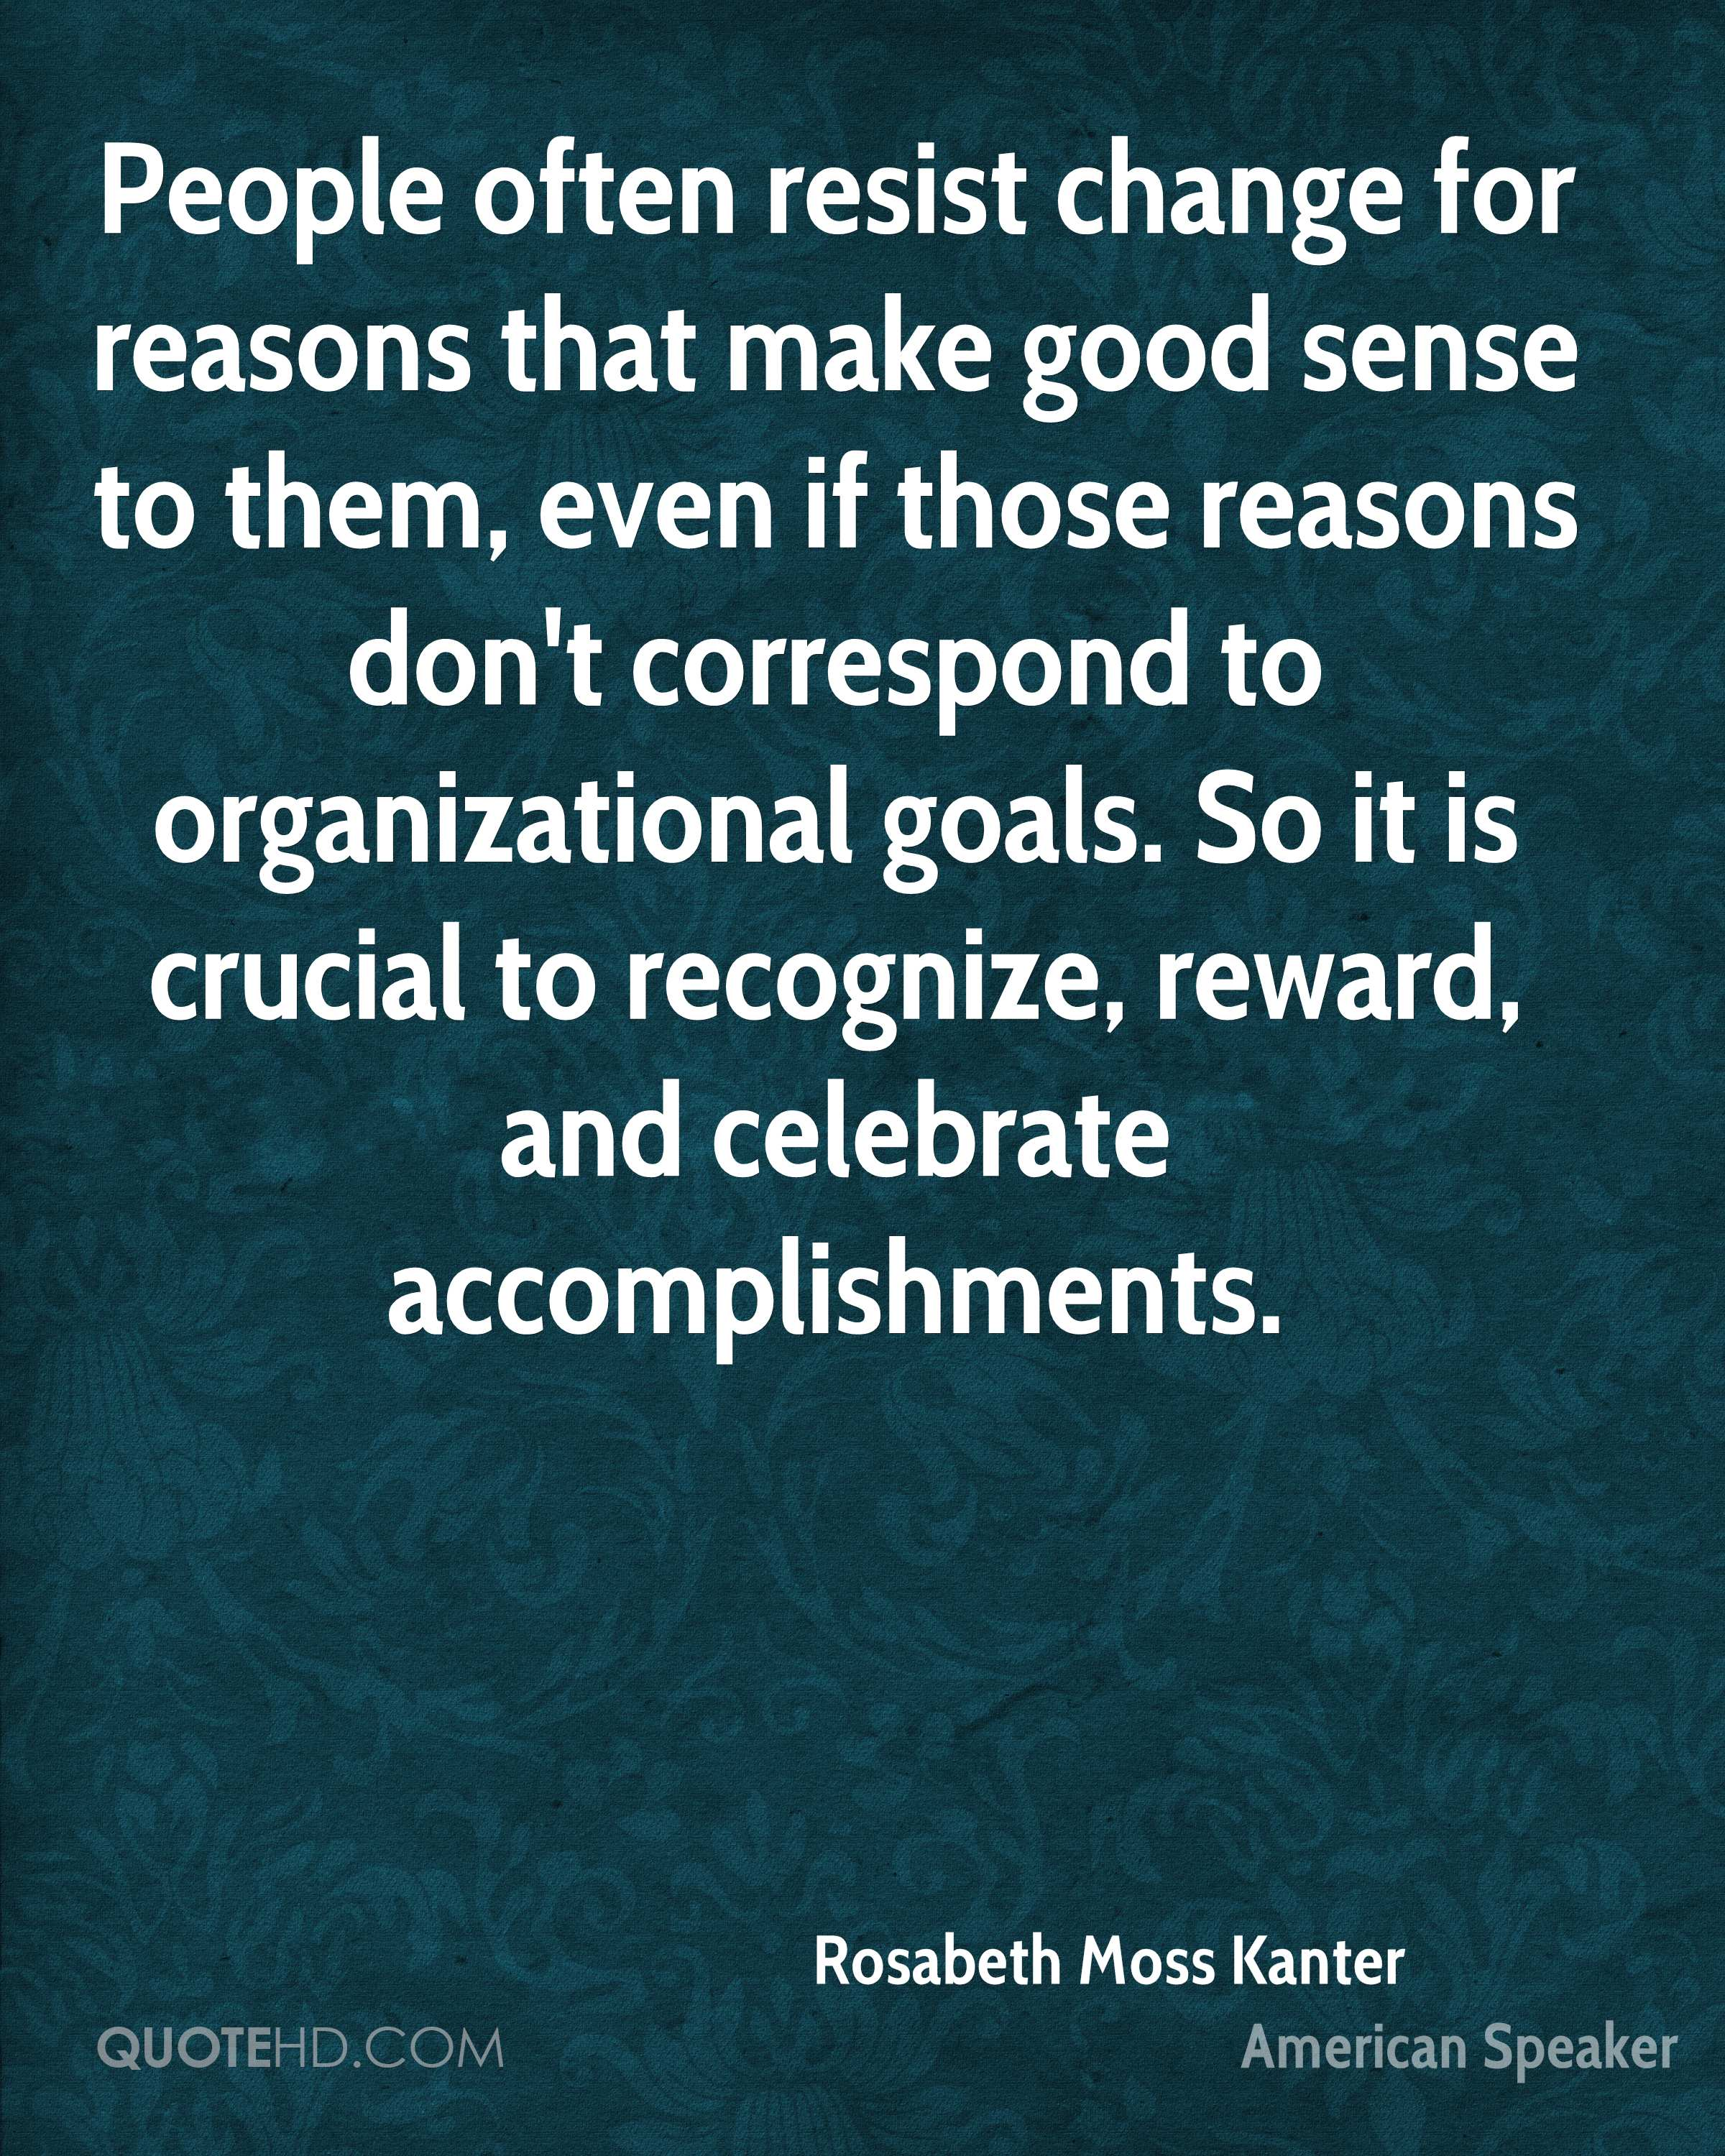 People often resist change for reasons that make good sense to them, even if those reasons don't correspond to organizational goals. So it is crucial to recognize, reward, and celebrate accomplishments.